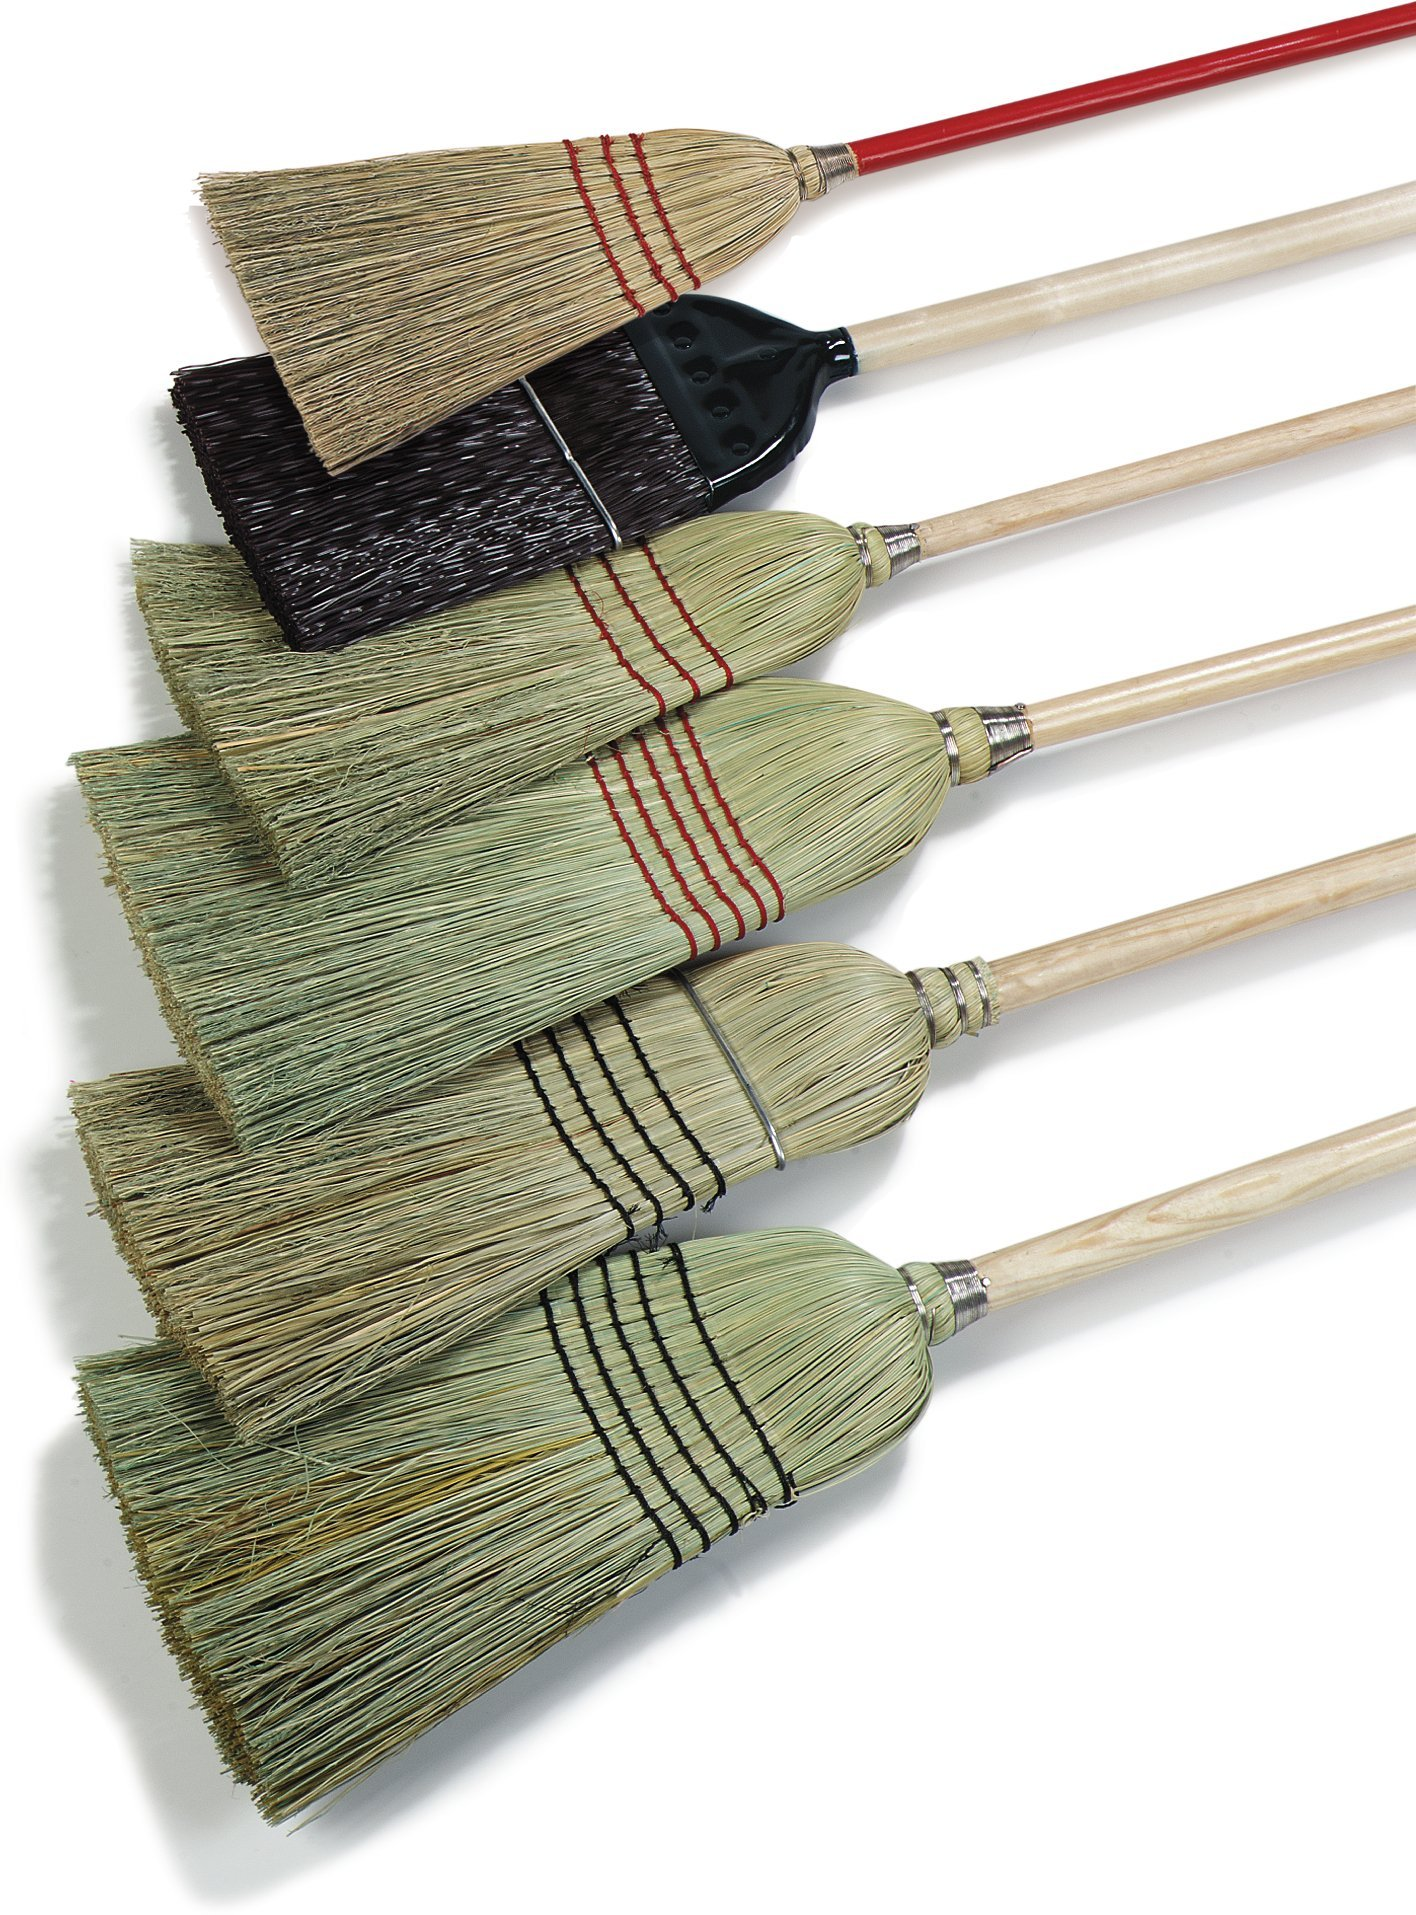 Carlisle 4135067 Commercial Corn Broom with Solid Wood Handle, 12'' Wide (Case of 12) by Carlisle (Image #7)